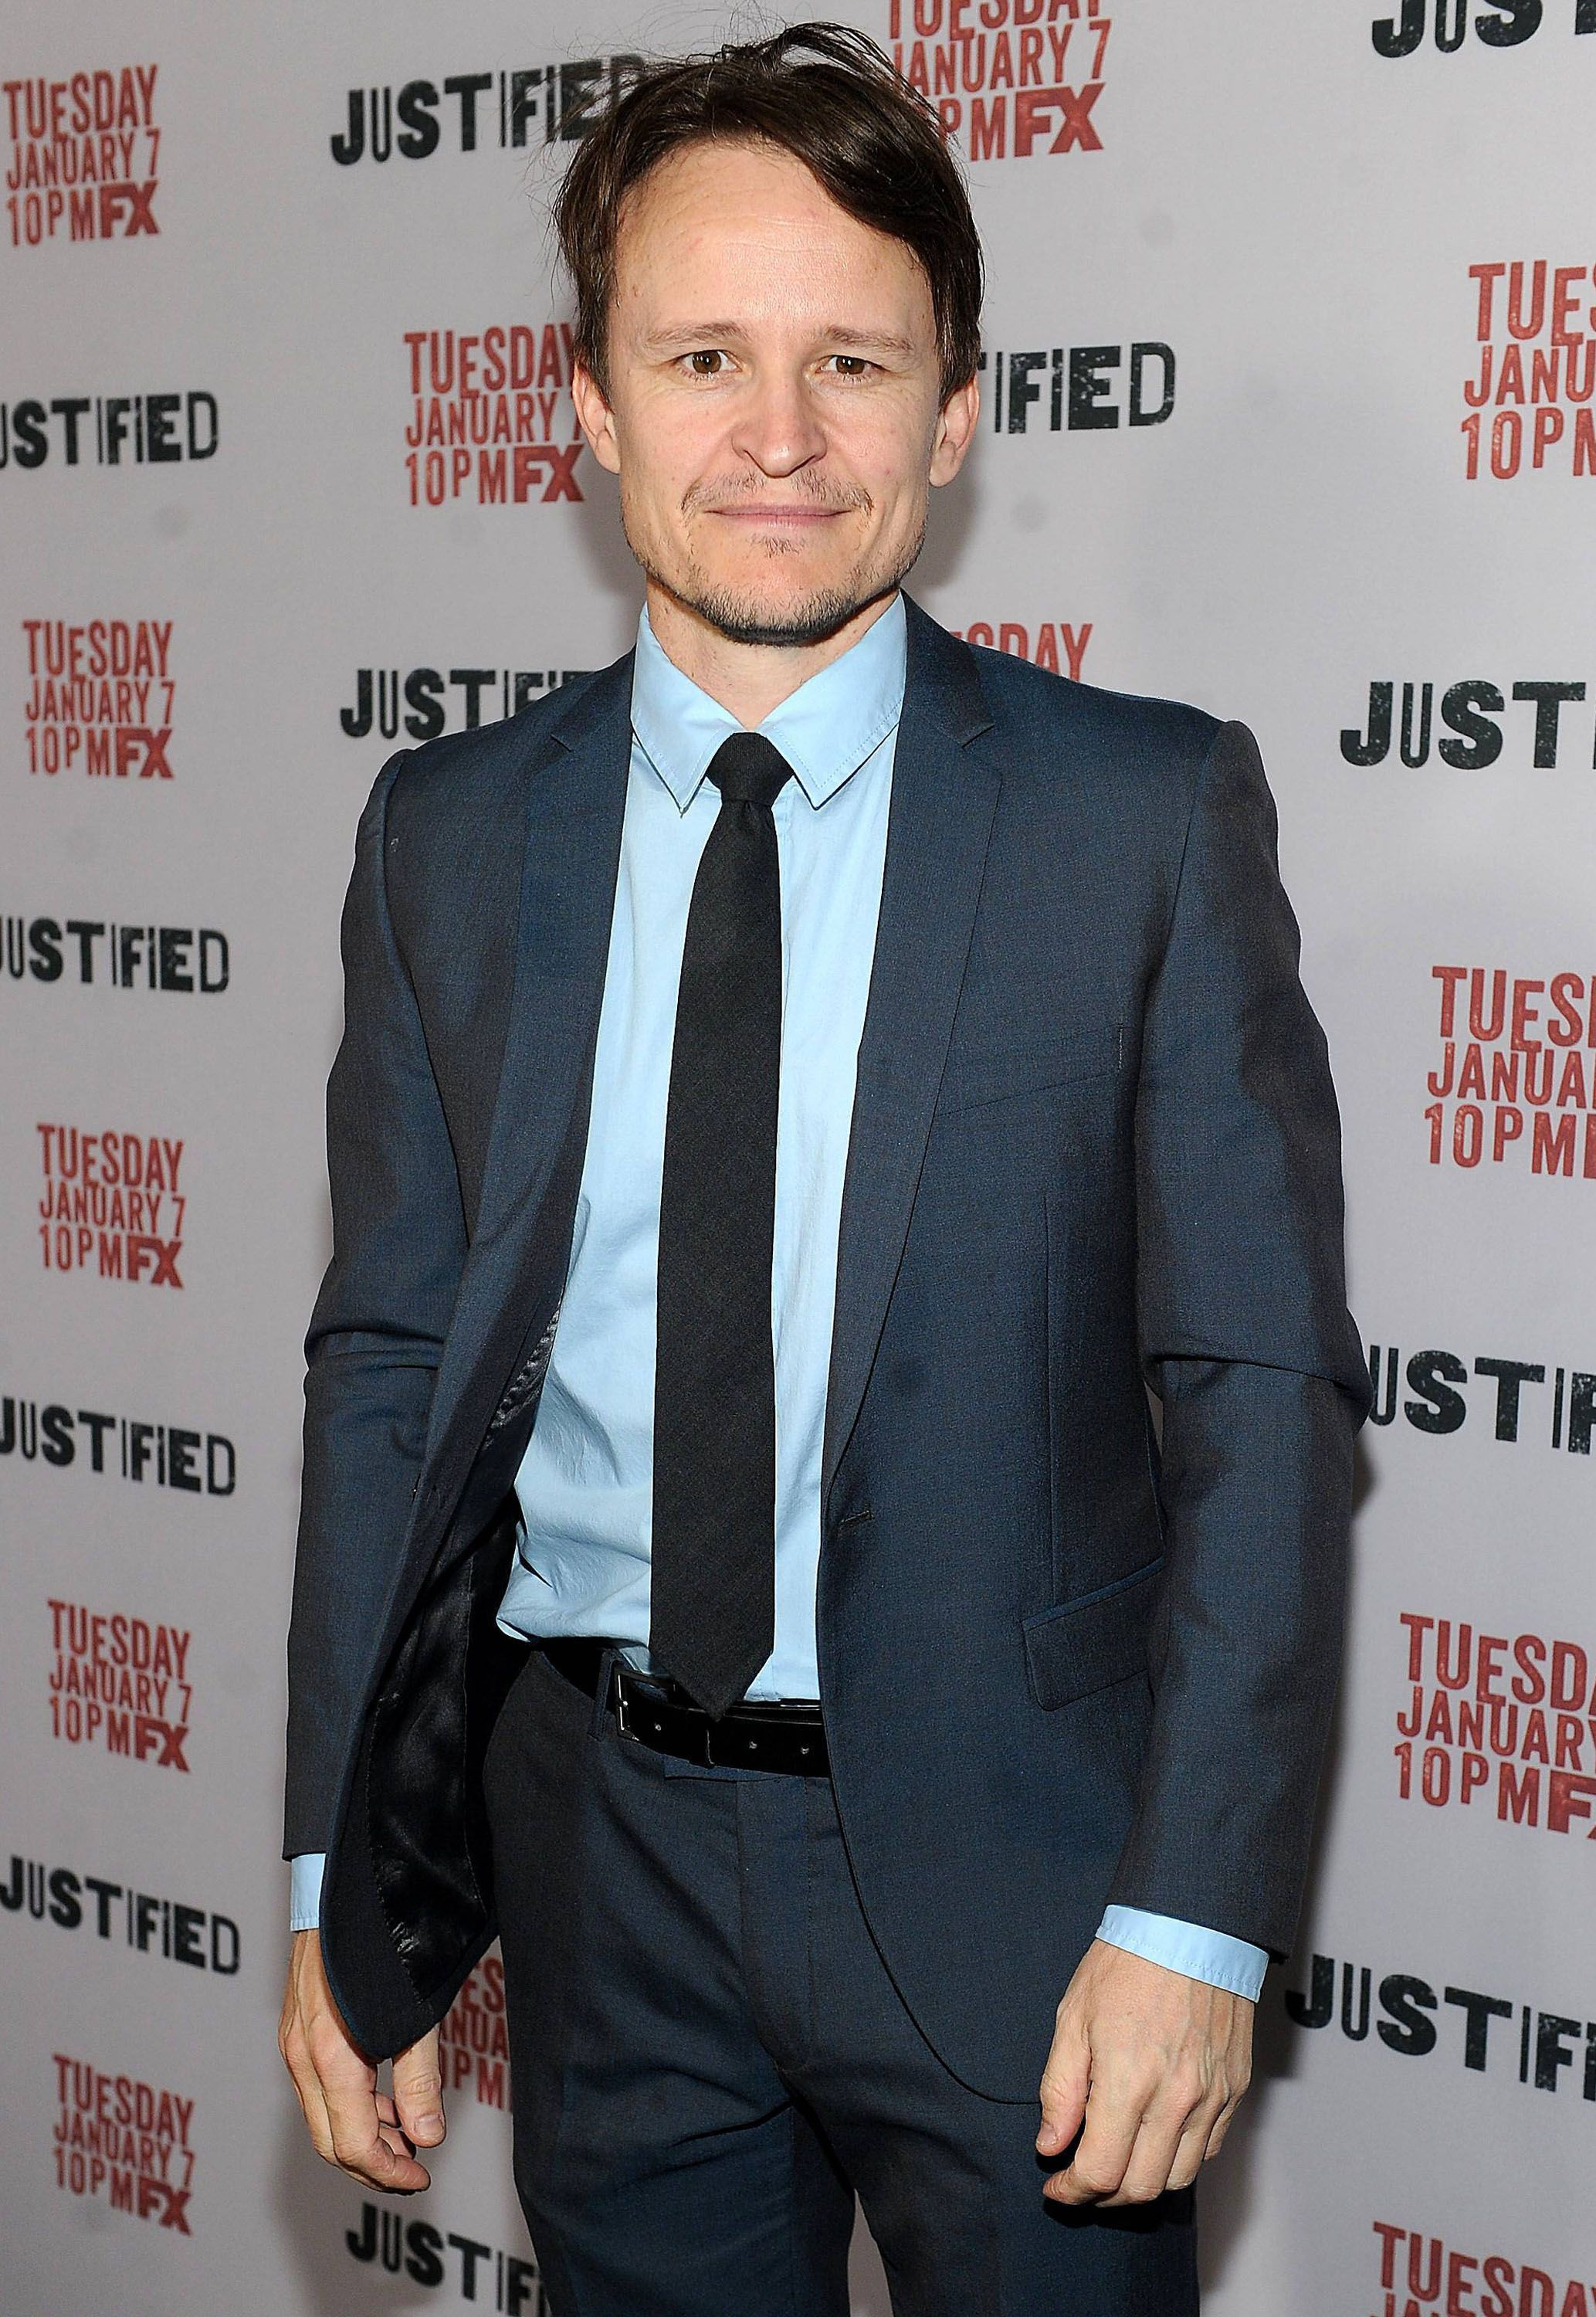 damon herriman imdbdamon herriman flesh and bone, damon herriman interview, damon herriman facebook, damon herriman, damon herriman breaking bad, damon herriman battle creek, damon herriman house of wax, дэймон хэрриман, damon herriman imdb, damon herriman height, damon herriman net worth, damon herriman justified, damon herriman married, damon herriman scorpion, damon herriman offspring, damon herriman partner, damon herriman girlfriend, damon herriman gay, damon herriman twitter